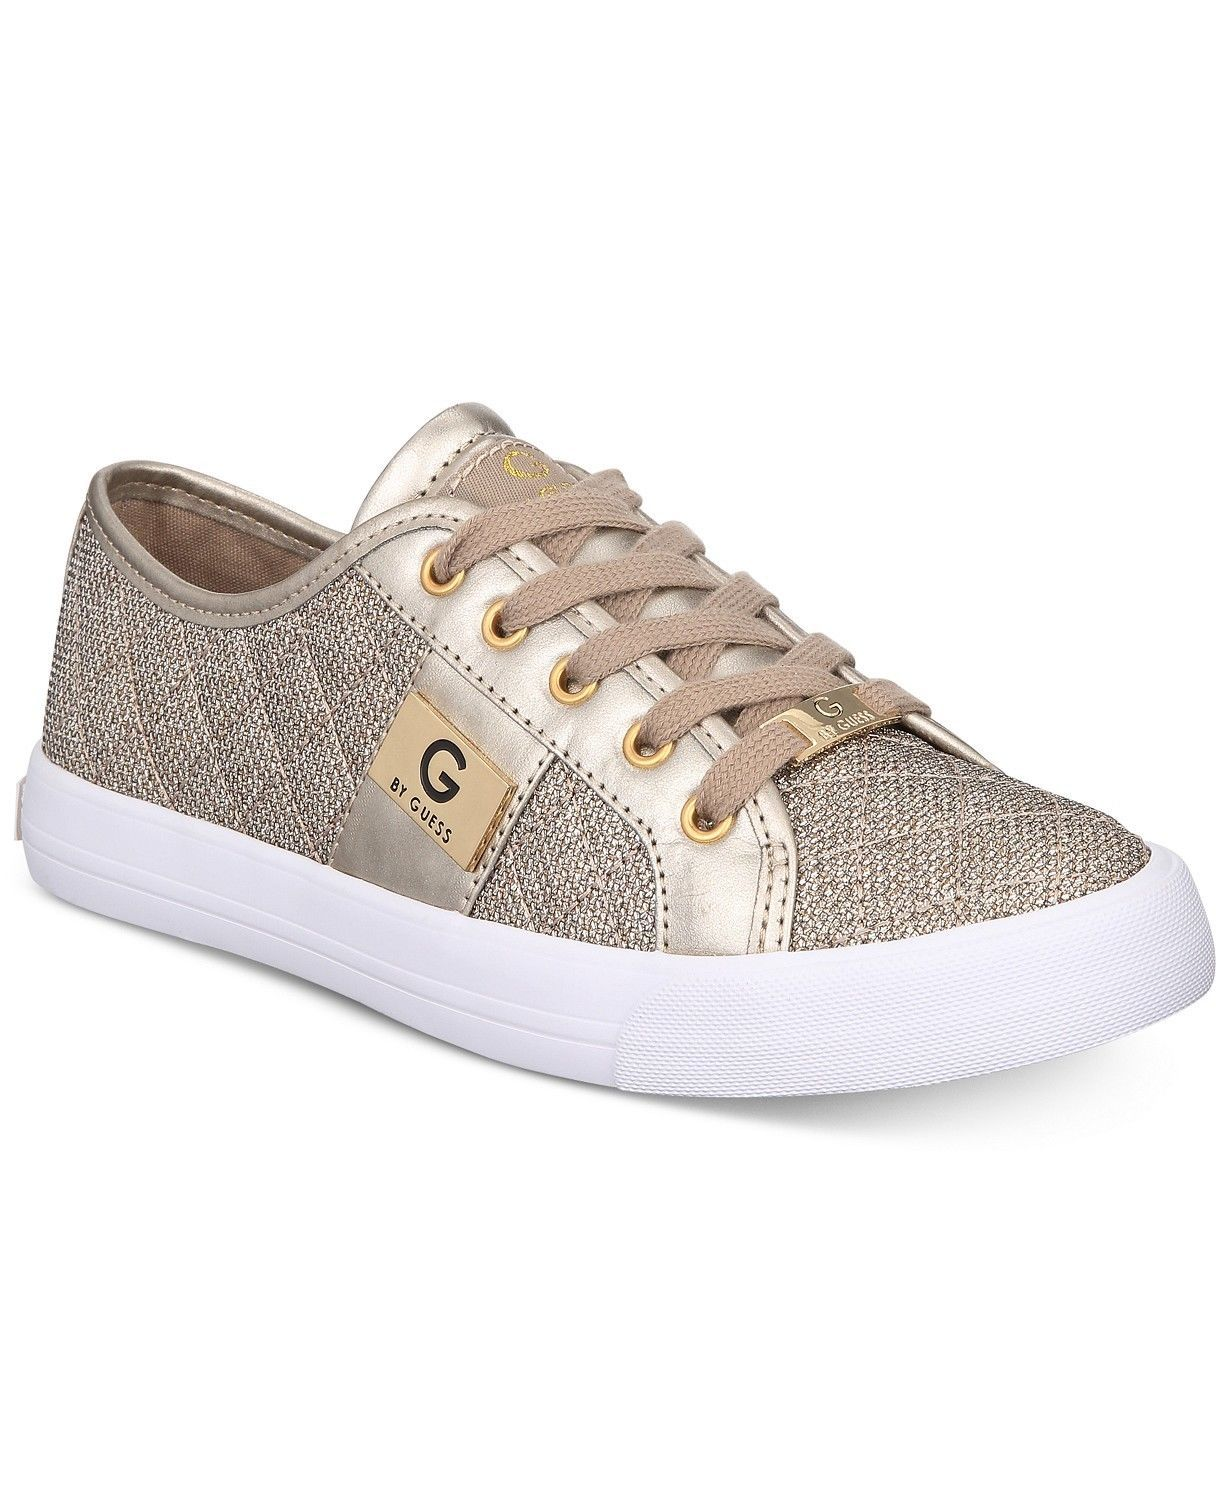 G by Guess Women's Lace Up Leather Quilted Fabric Glitter Sneakers Shoes Gold